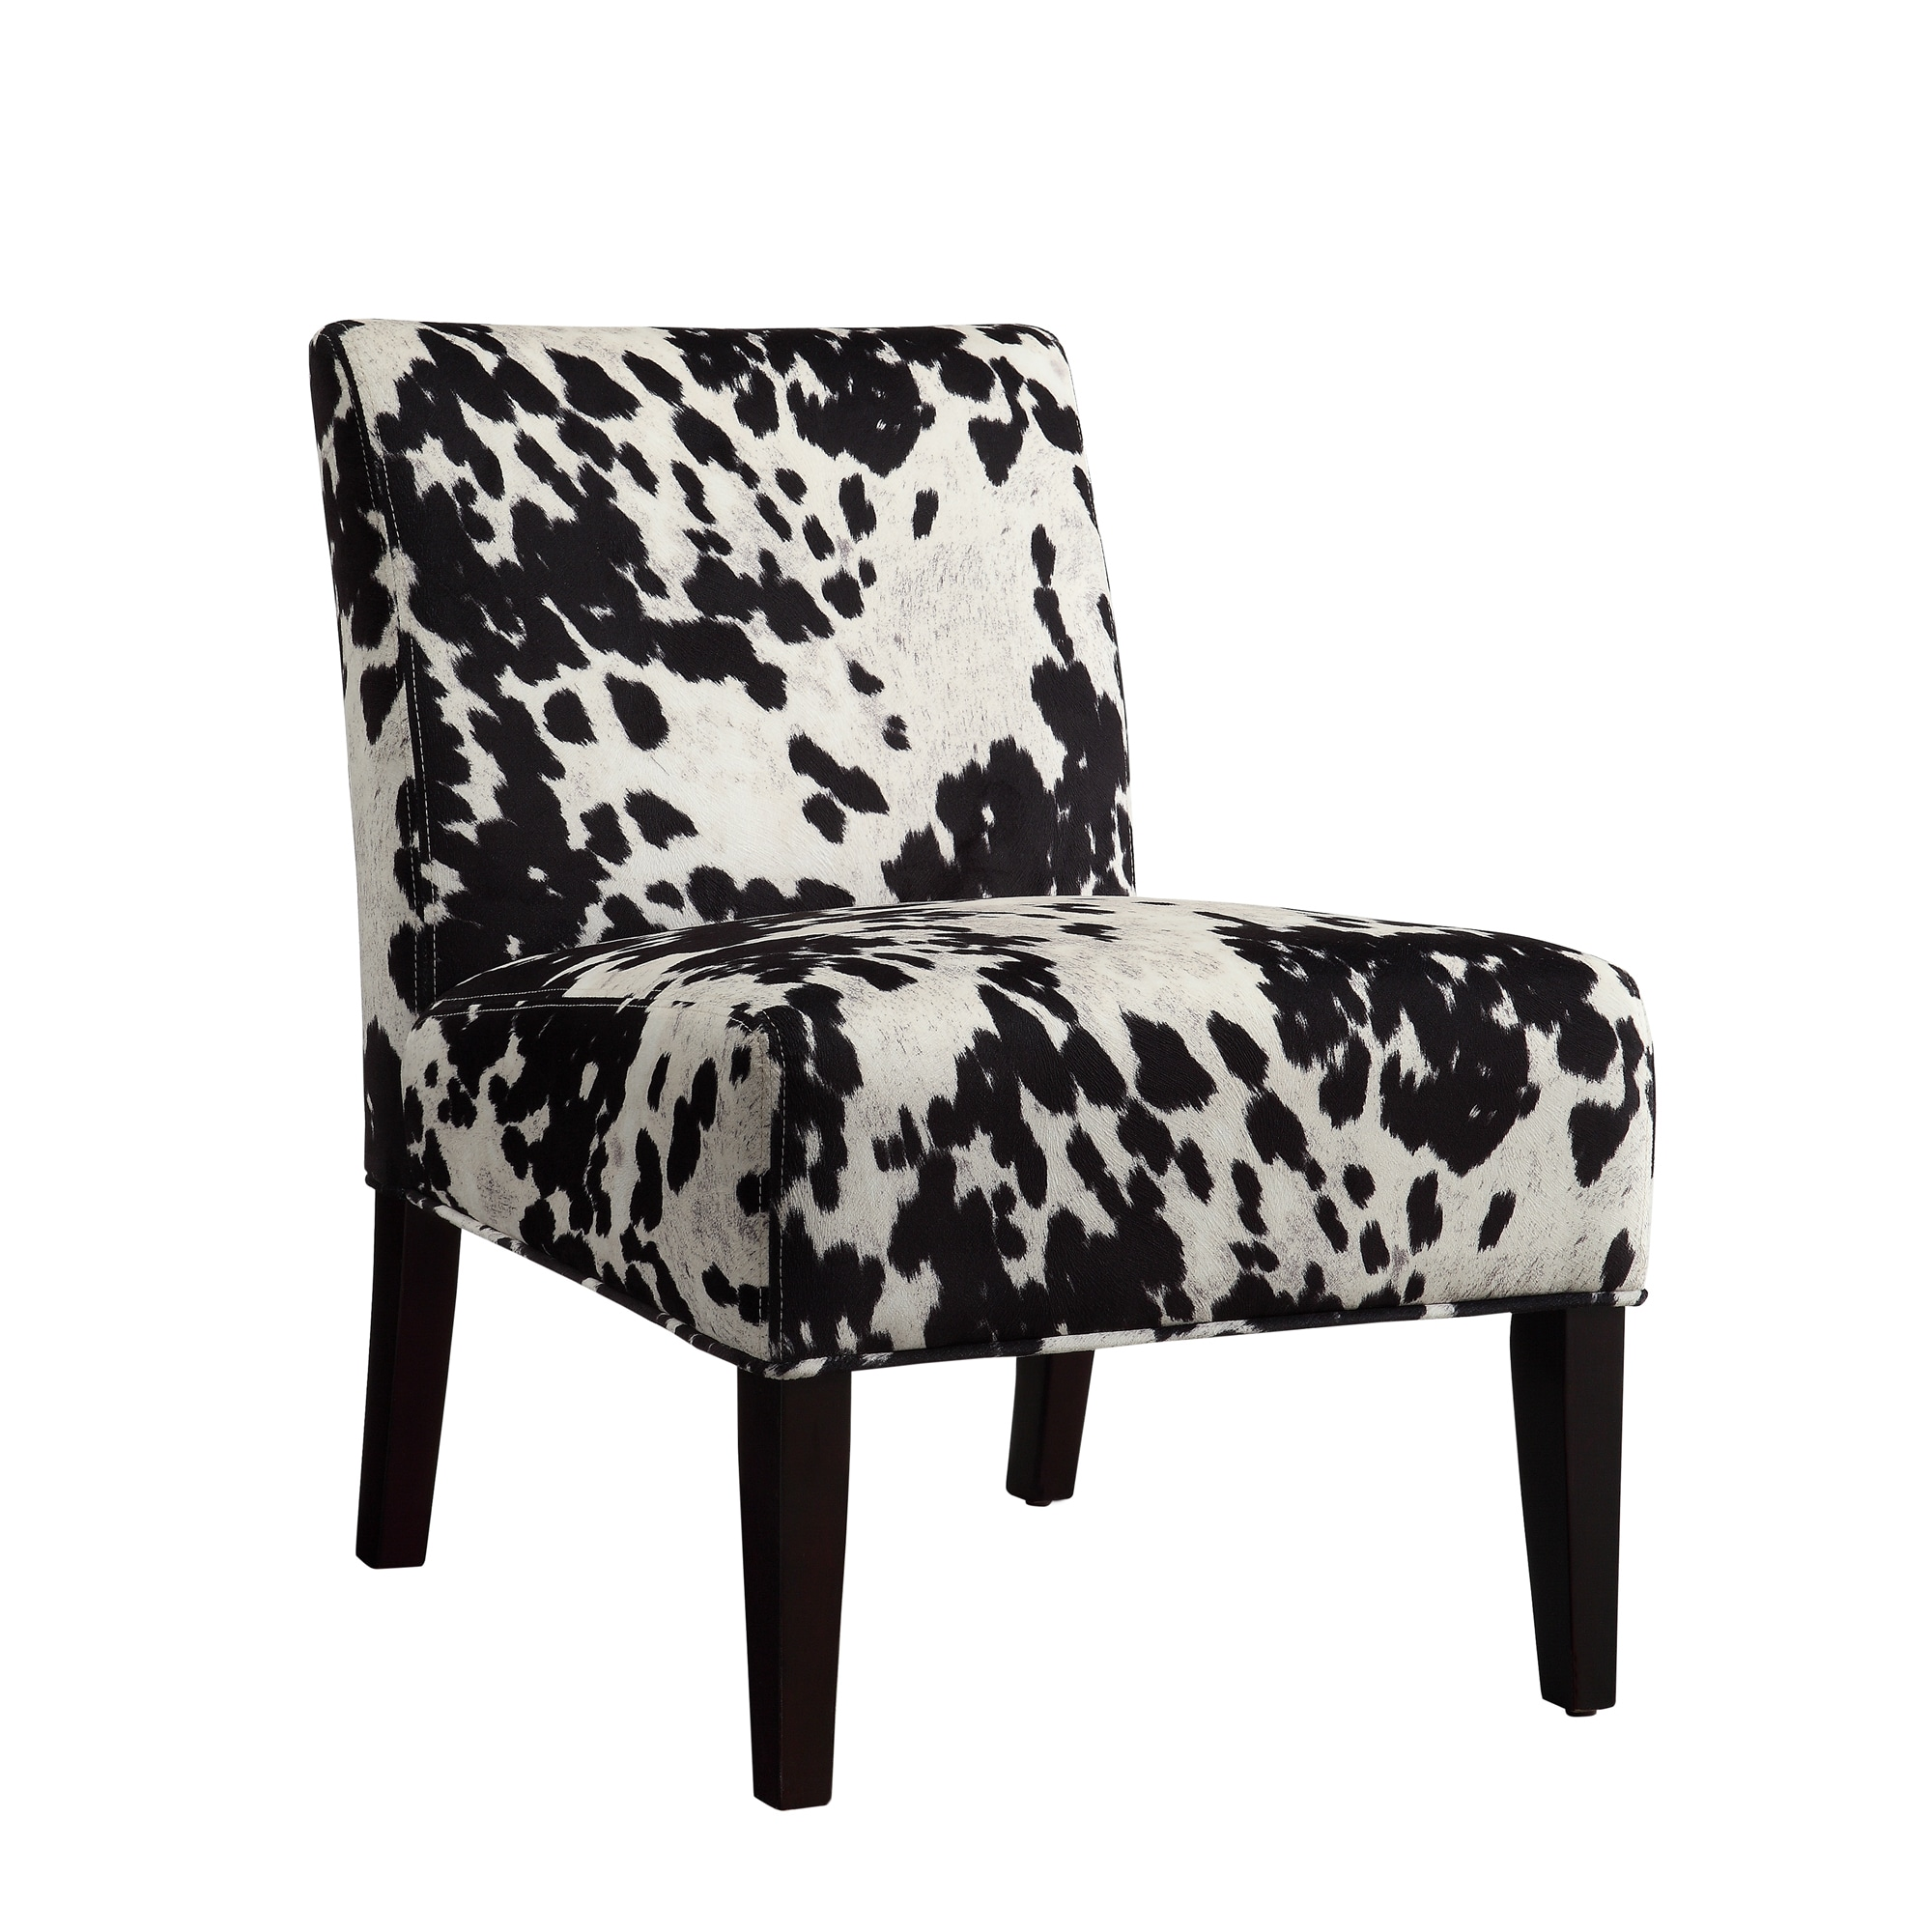 Cow Hide Chair Black And White Faux Cow Hide Fabric Accent Chair By Inspire Q Bold